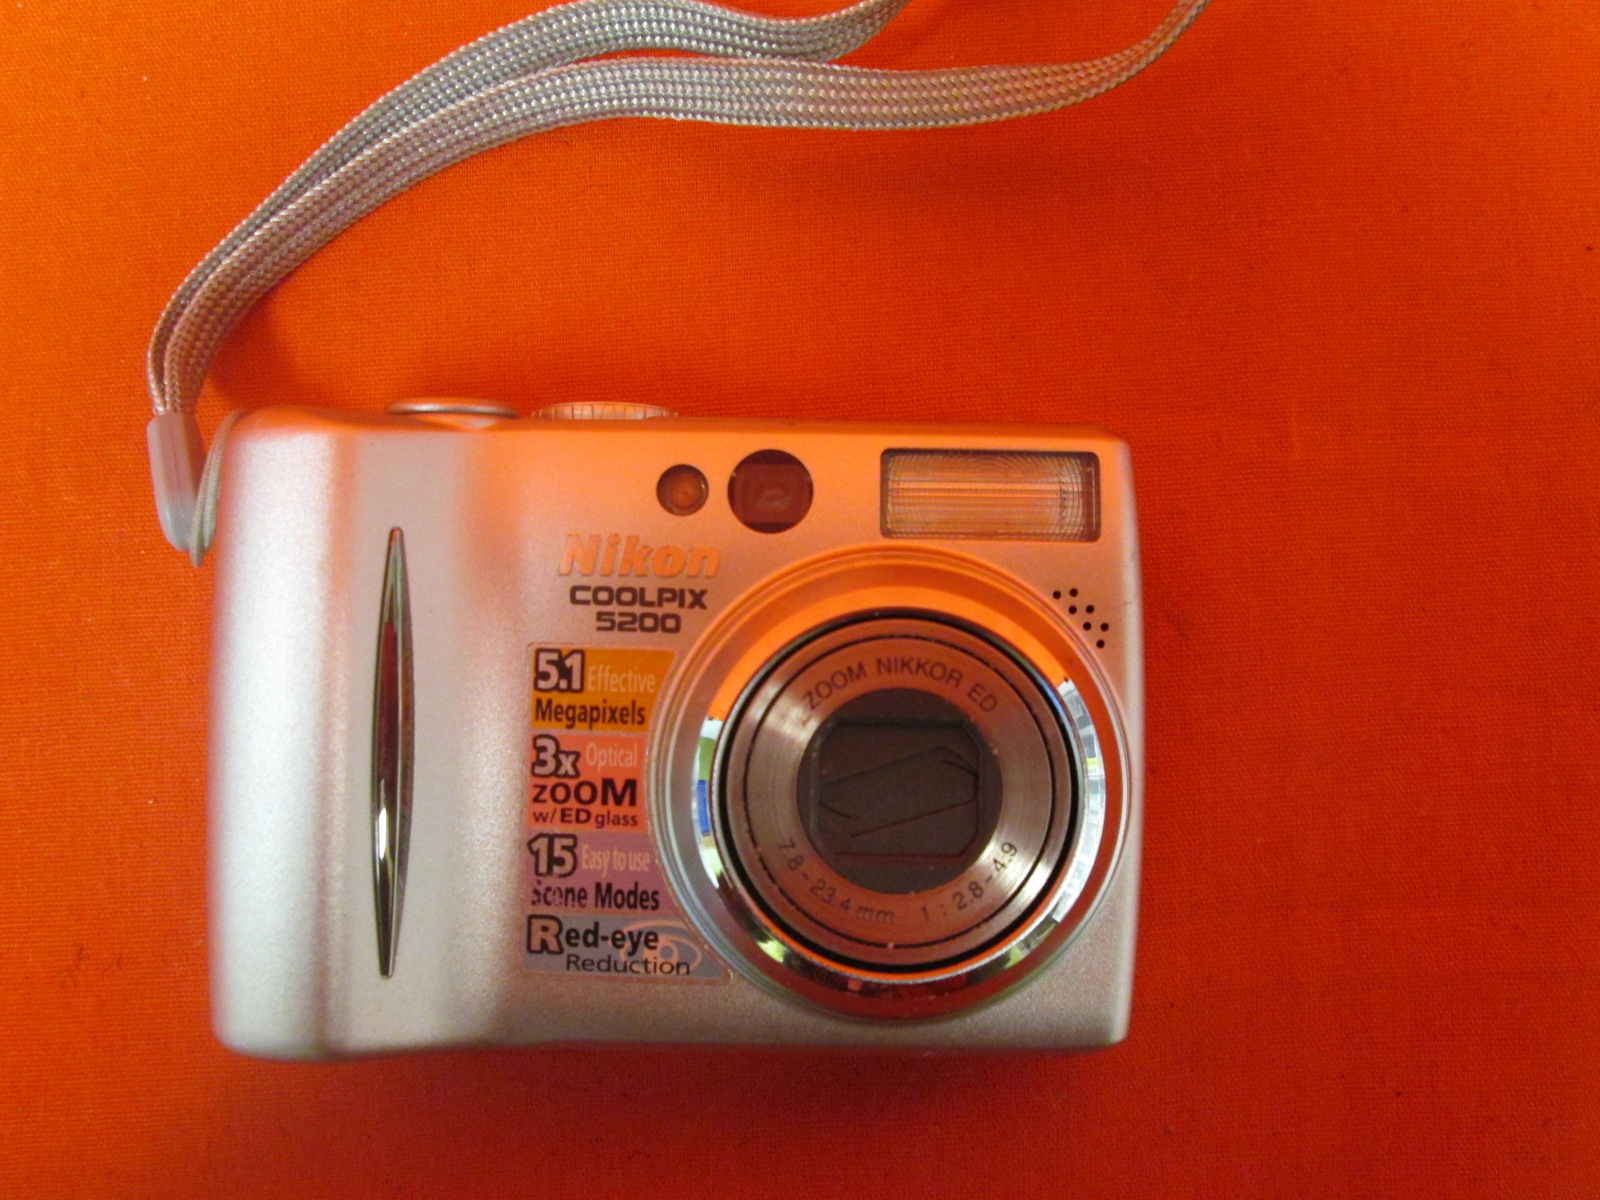 Nikon Coolpix 5200 5MP Digital Camera With 3X Optical Zoom Incomplete